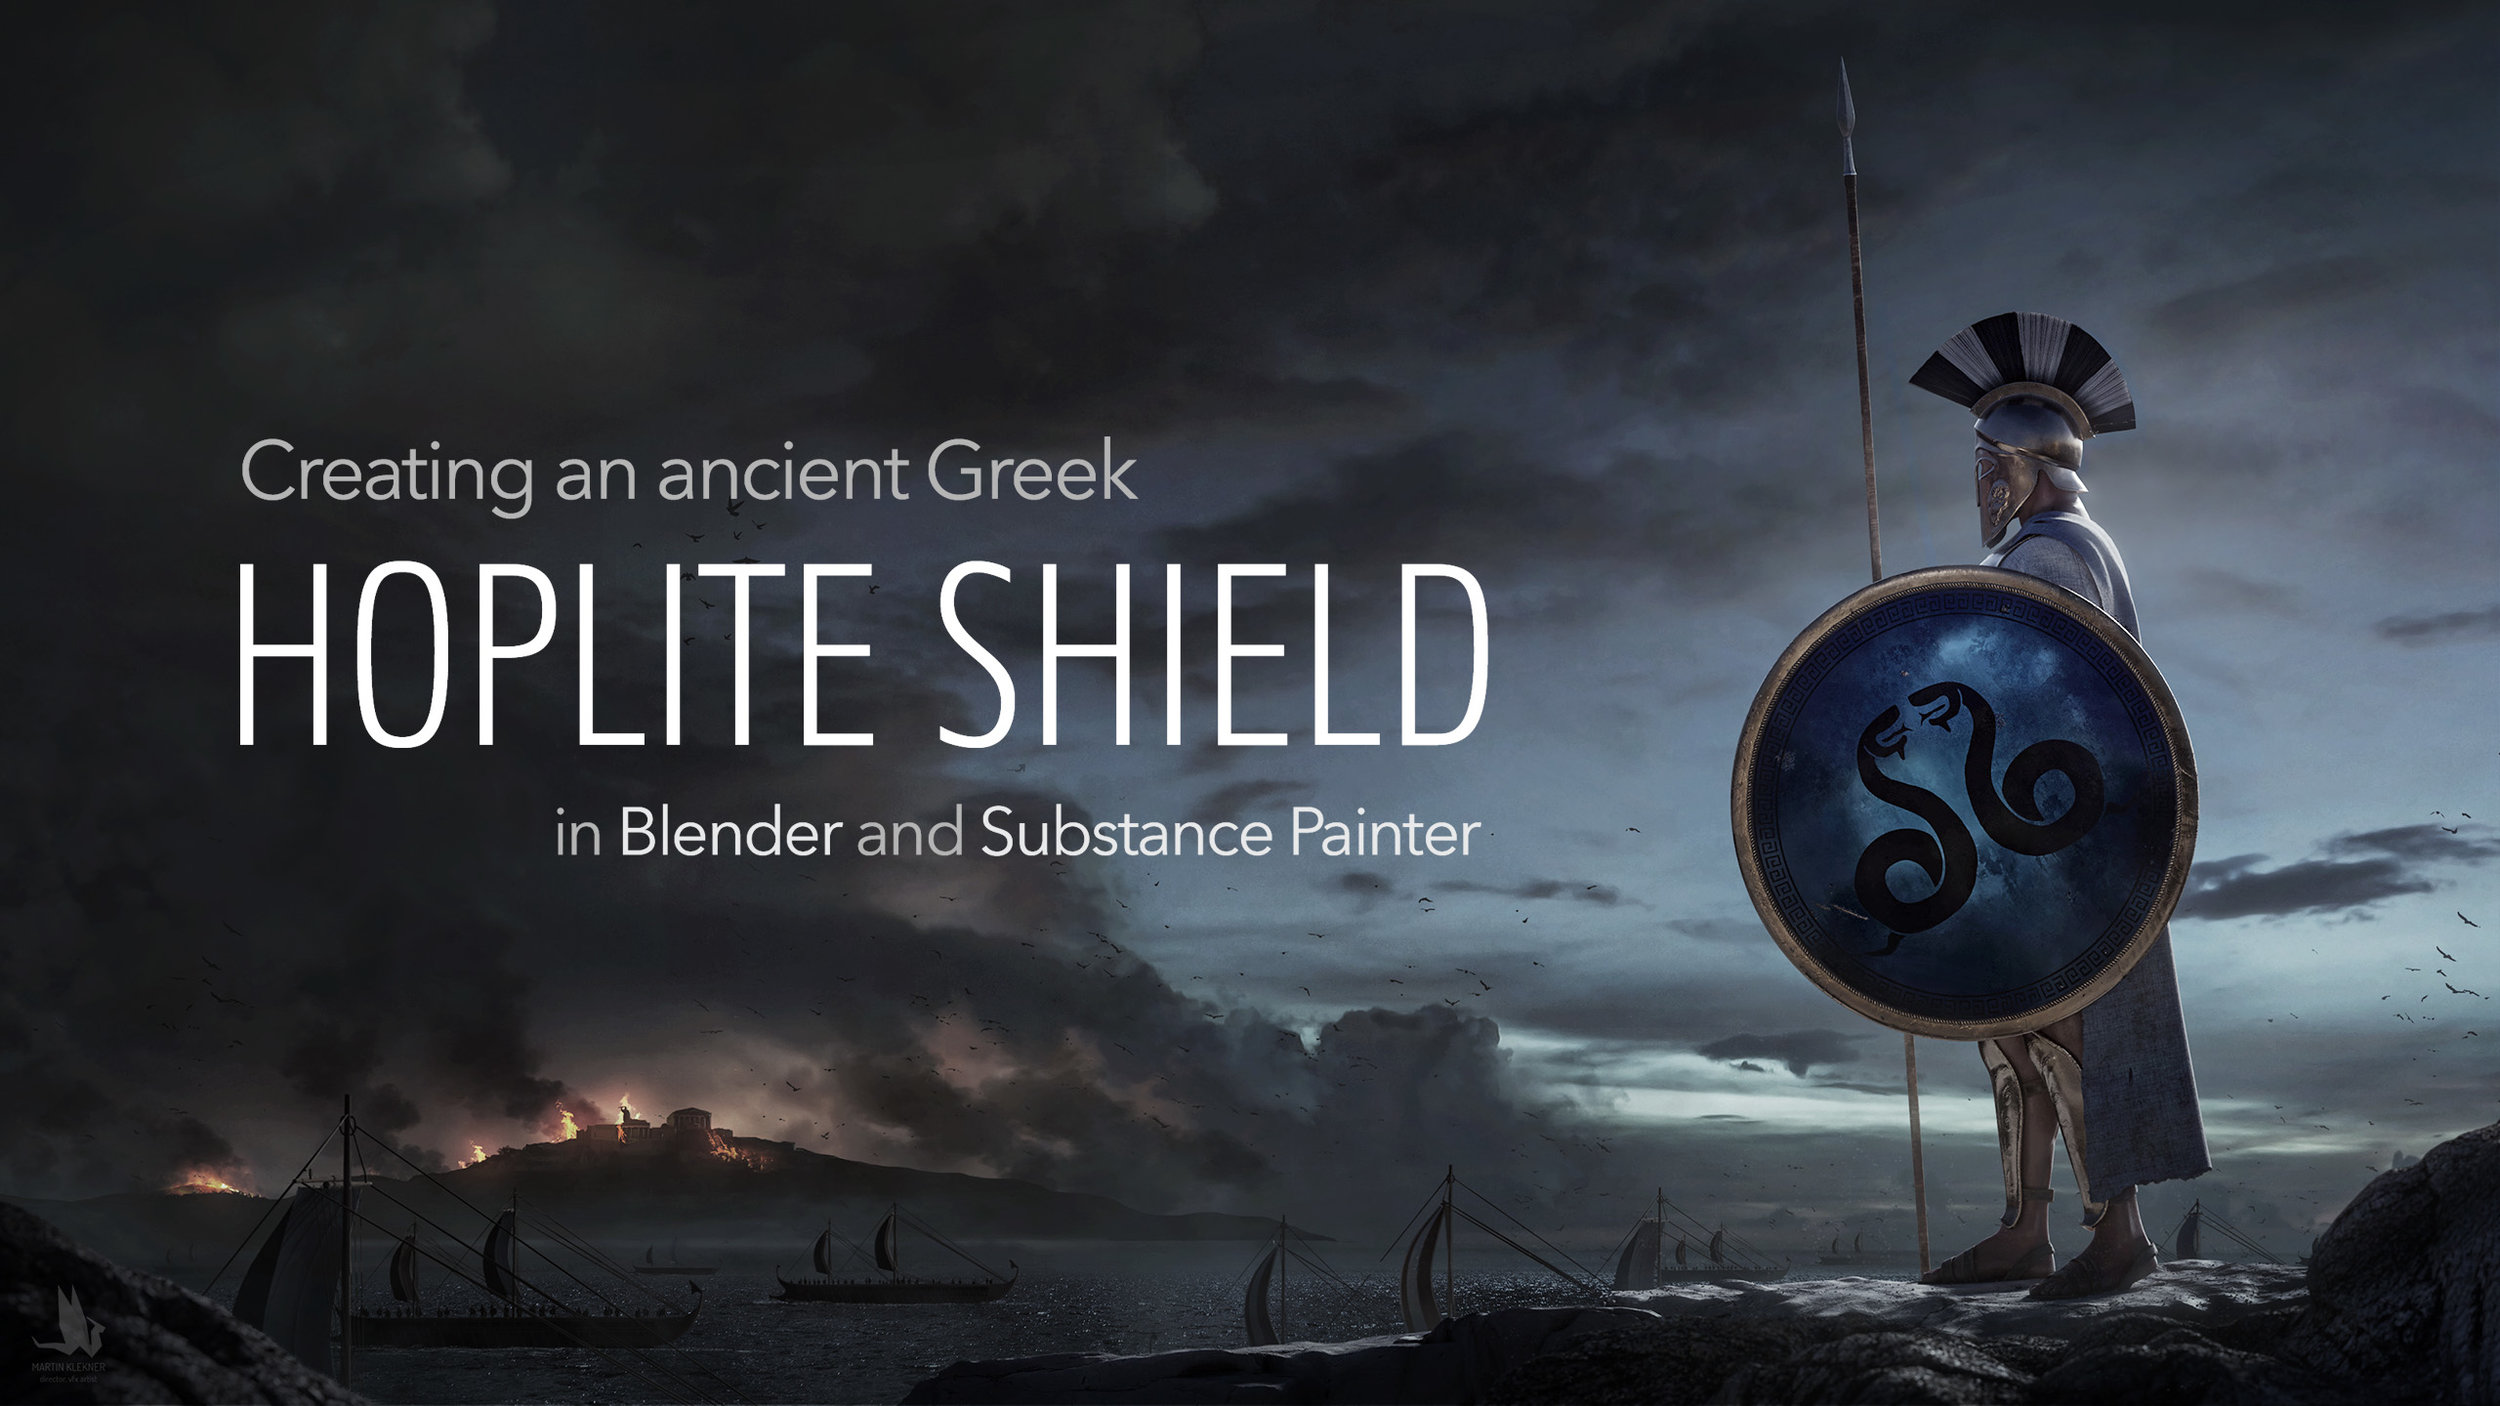 This 2 hour long course showcases my workflow when creating CG assets, using Blender and Substance Painter. The assets are available in the Courses section.